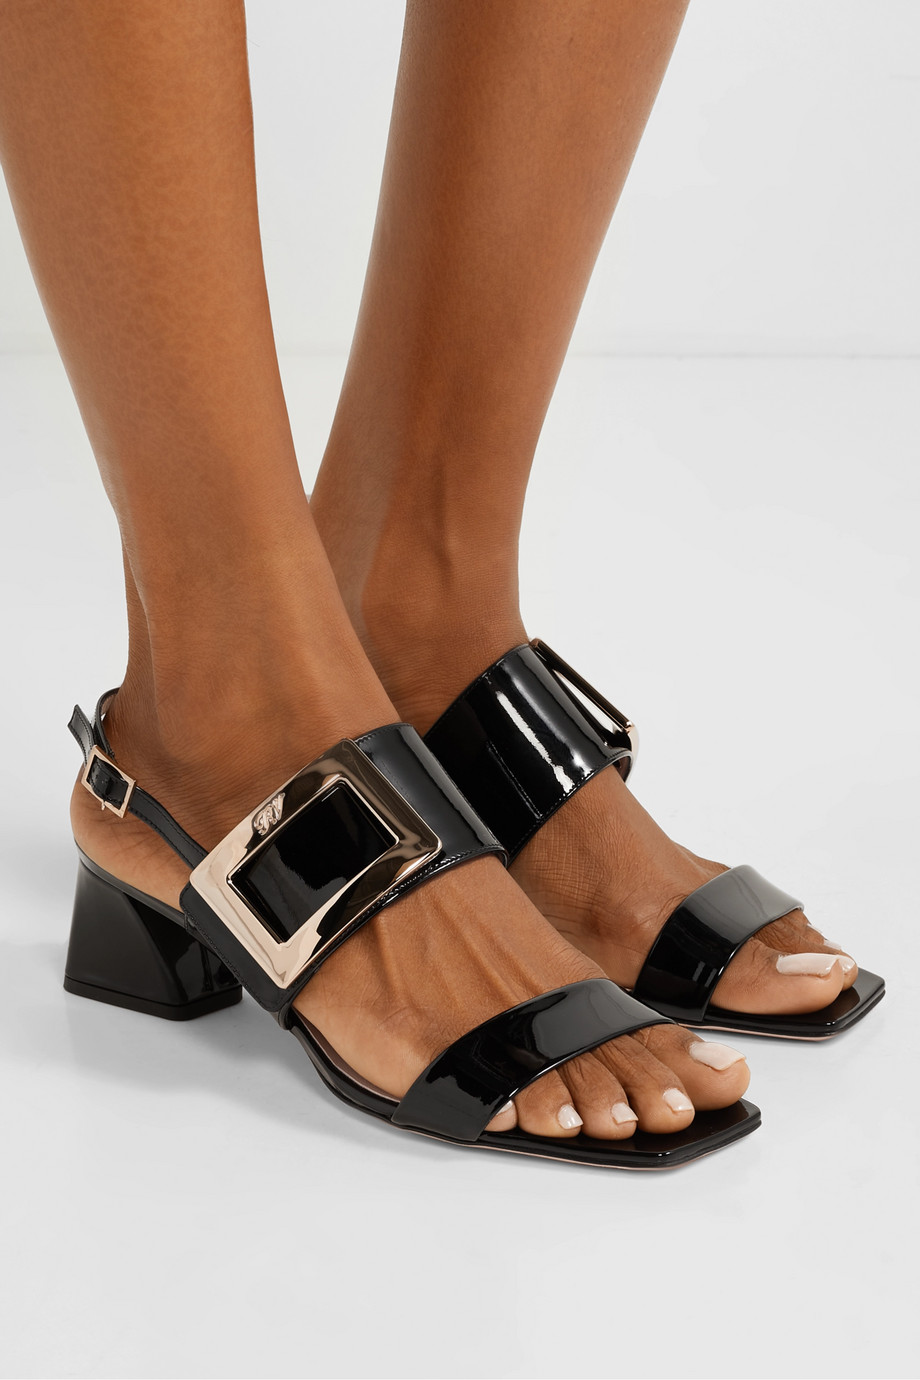 Roger Vivier Gommettine patent-leather slingback sandals